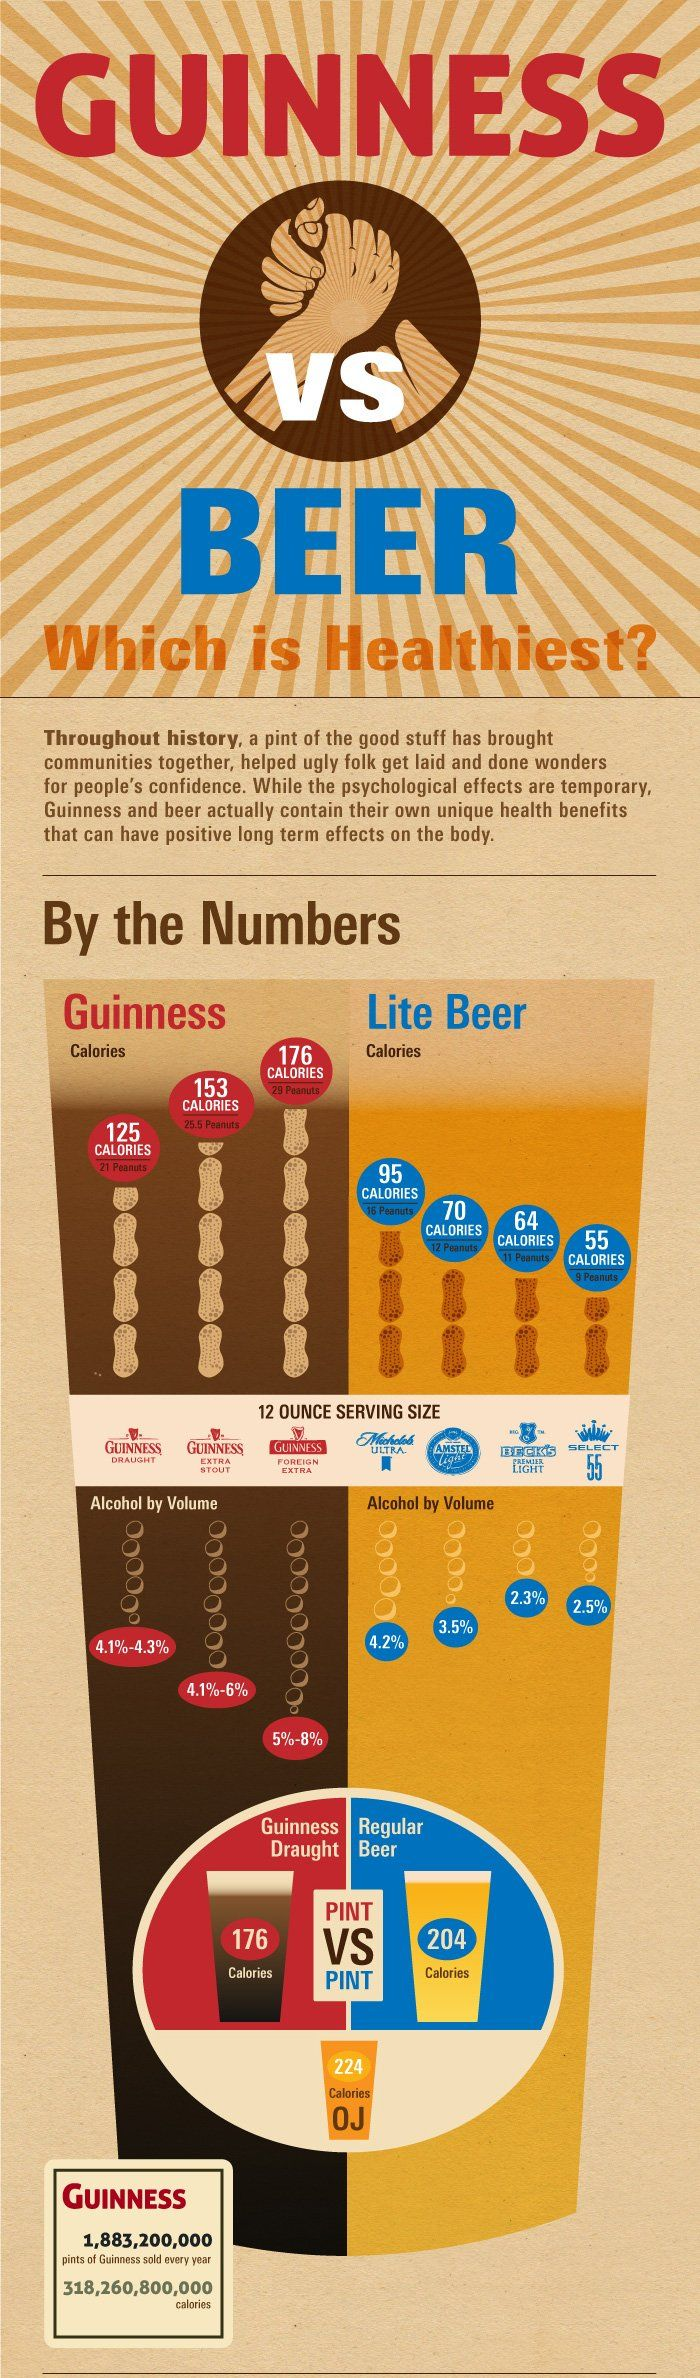 Infographics - Guinness vs. Beer. Which Is Healthiest?